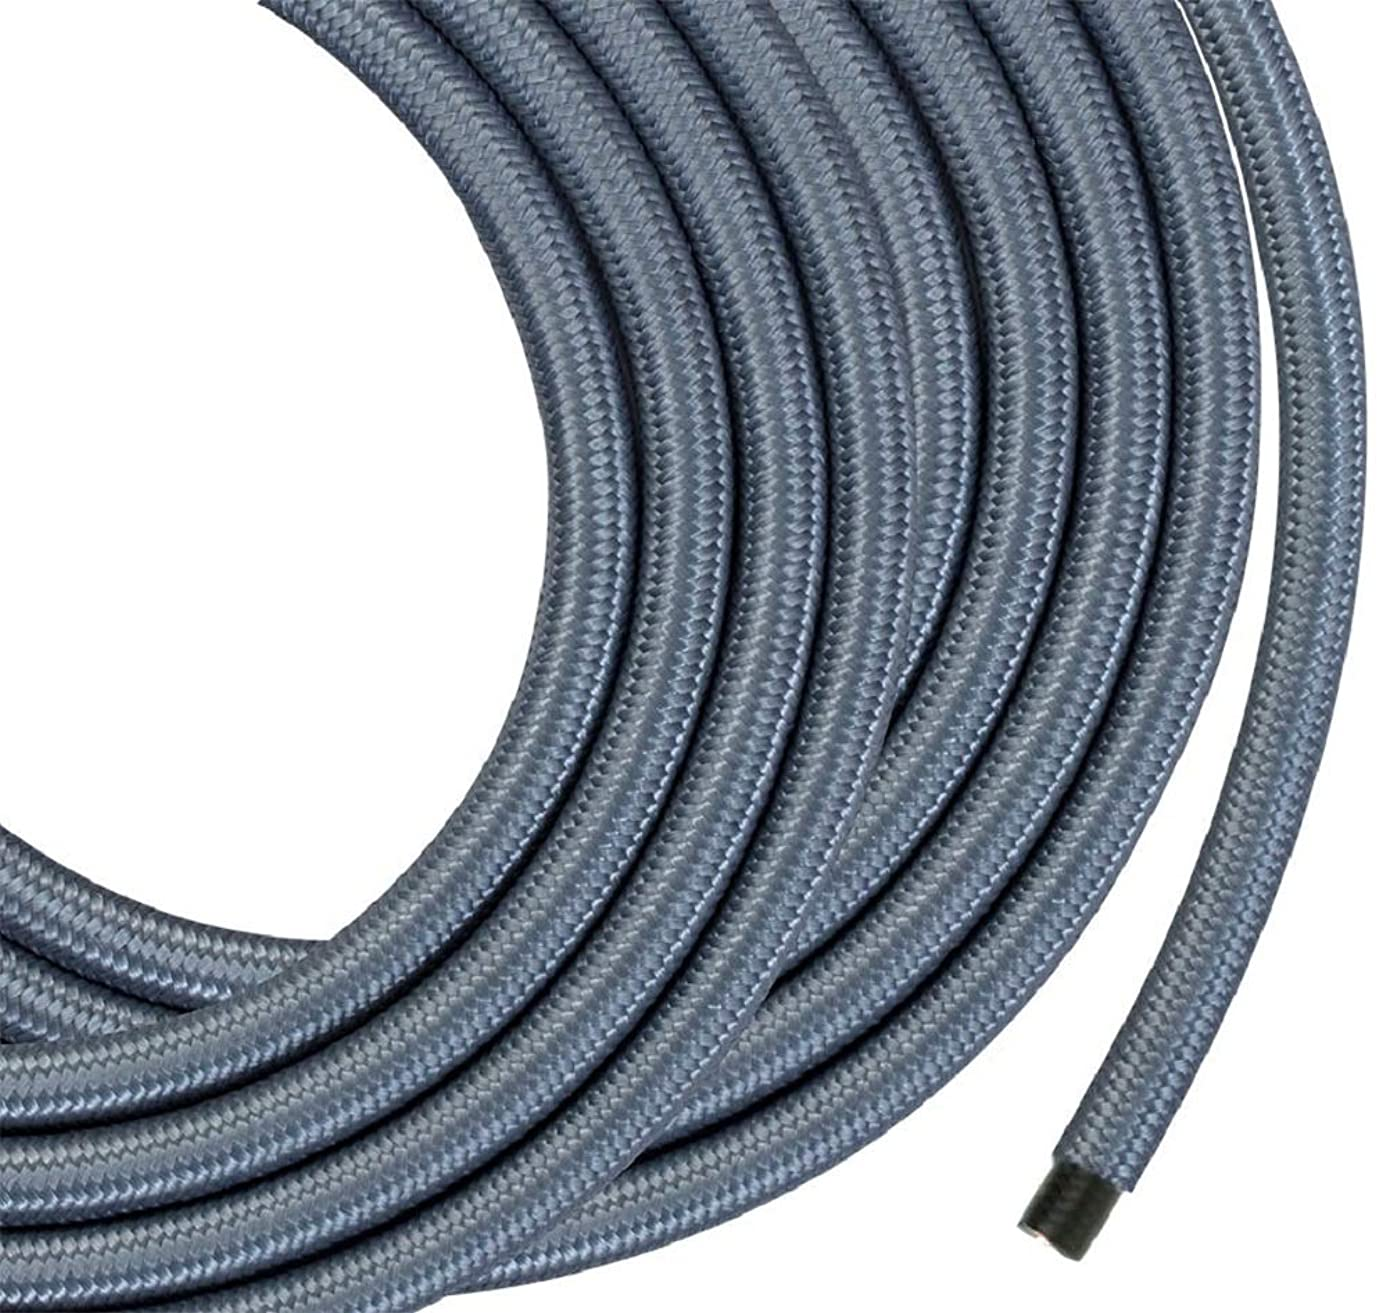 Monolith Speaker Wire - 50 Feet - Silver - 12AWG with Braided Nylon Sleeve, Oxygen Free Copper, Multi-Strand Conductors, PE Insulated